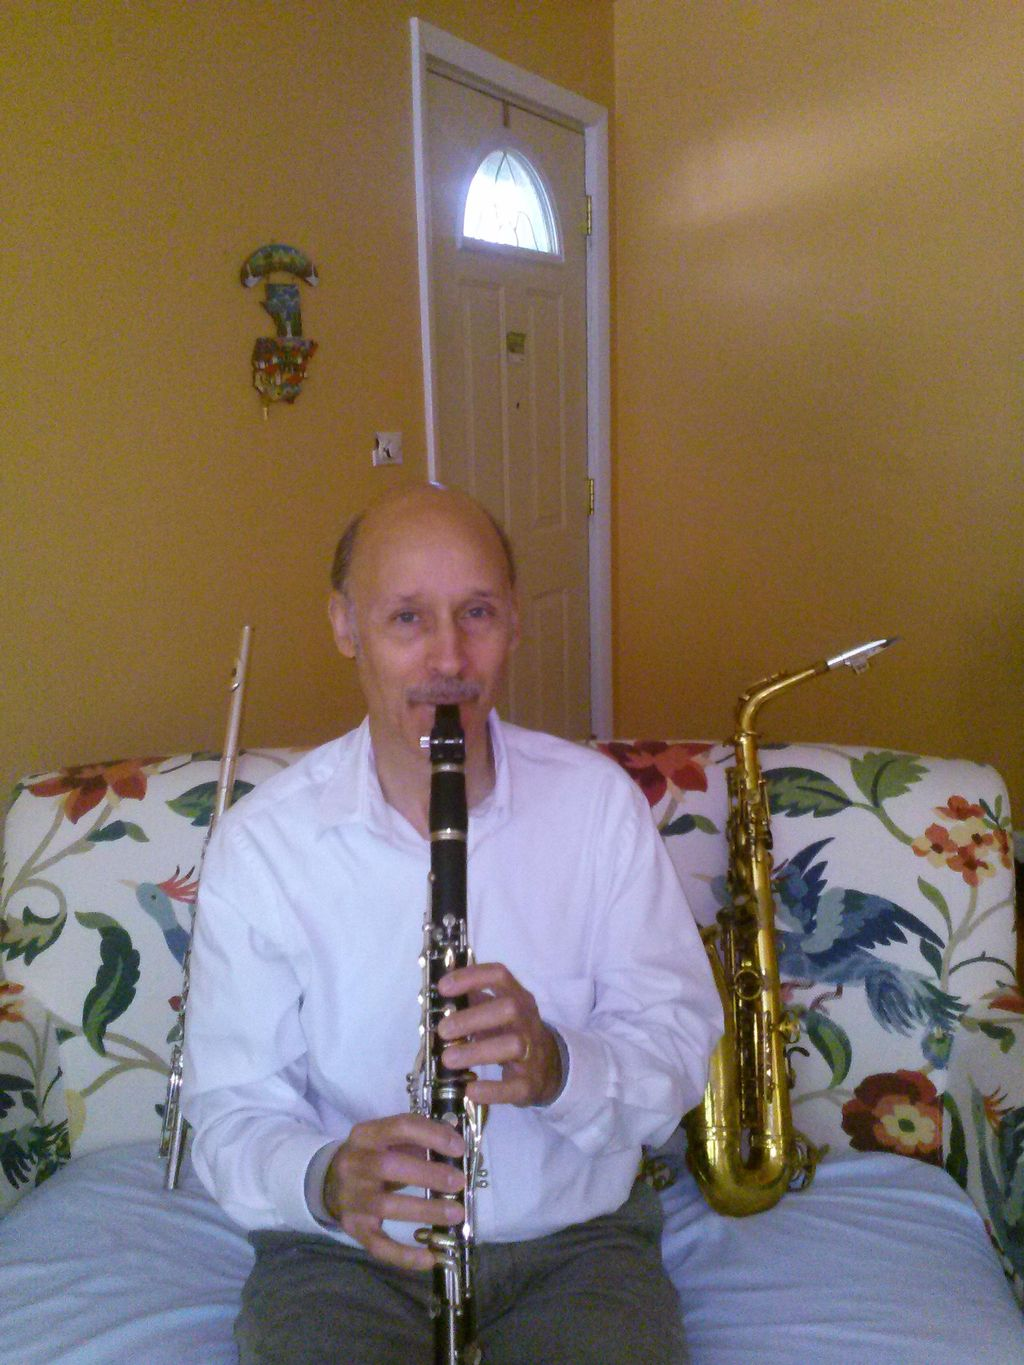 Donald Jacobs Music Lessons and Performance